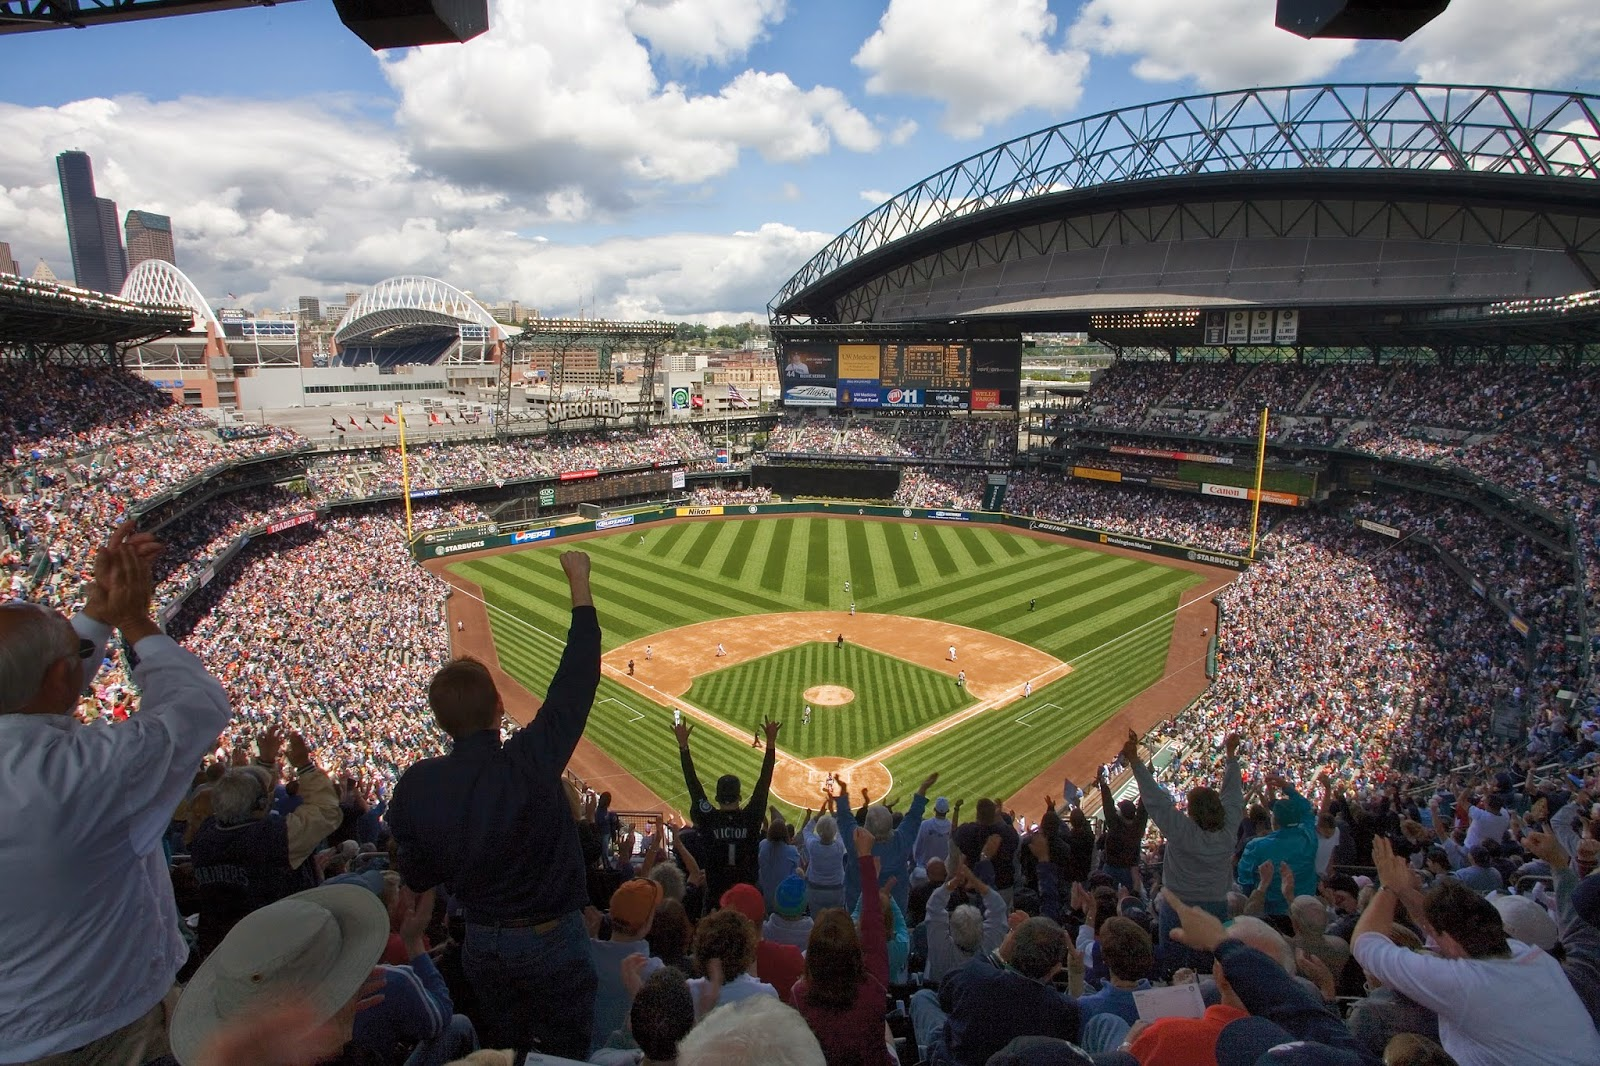 Seattle Mariners Tickets and Luxury Suites For Sale, Safeco Field